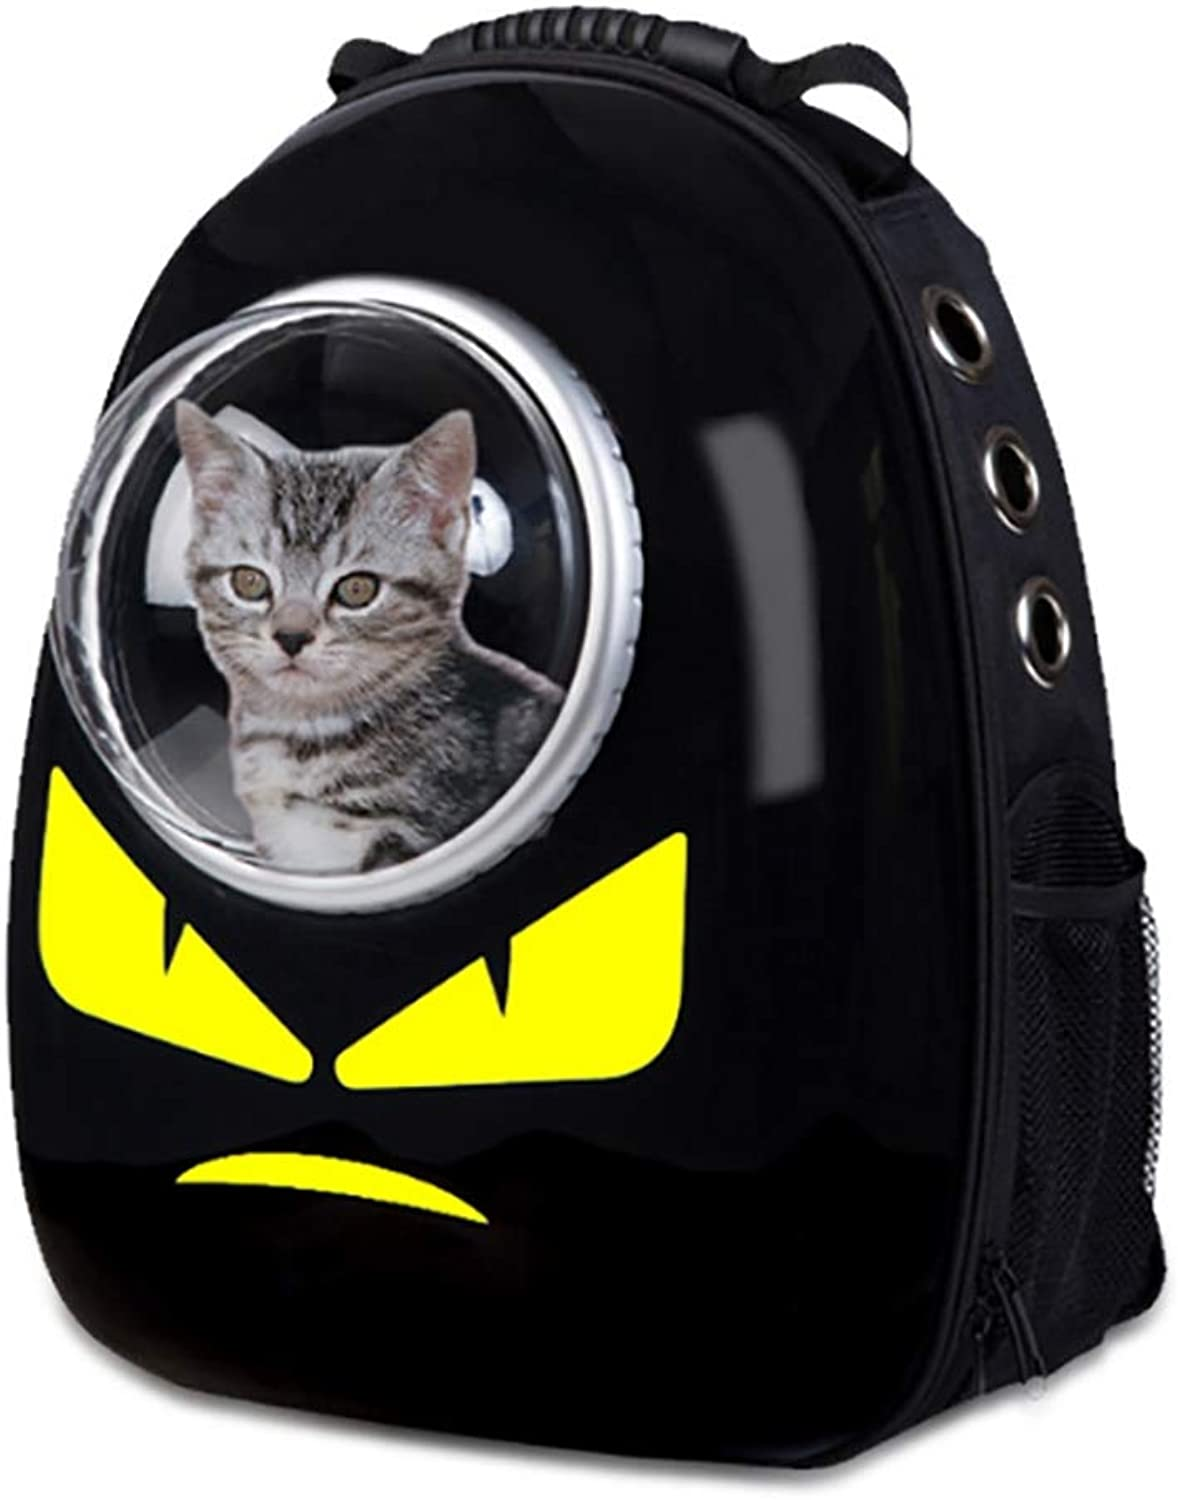 CRUGLZM Pet Carrier Backpack Latest Style Comfortable Dog Cat Travel Carrier Bag Front for Small Dogs Carrier Bike Hiking Outdoor Space Capsule Bubble Design,A